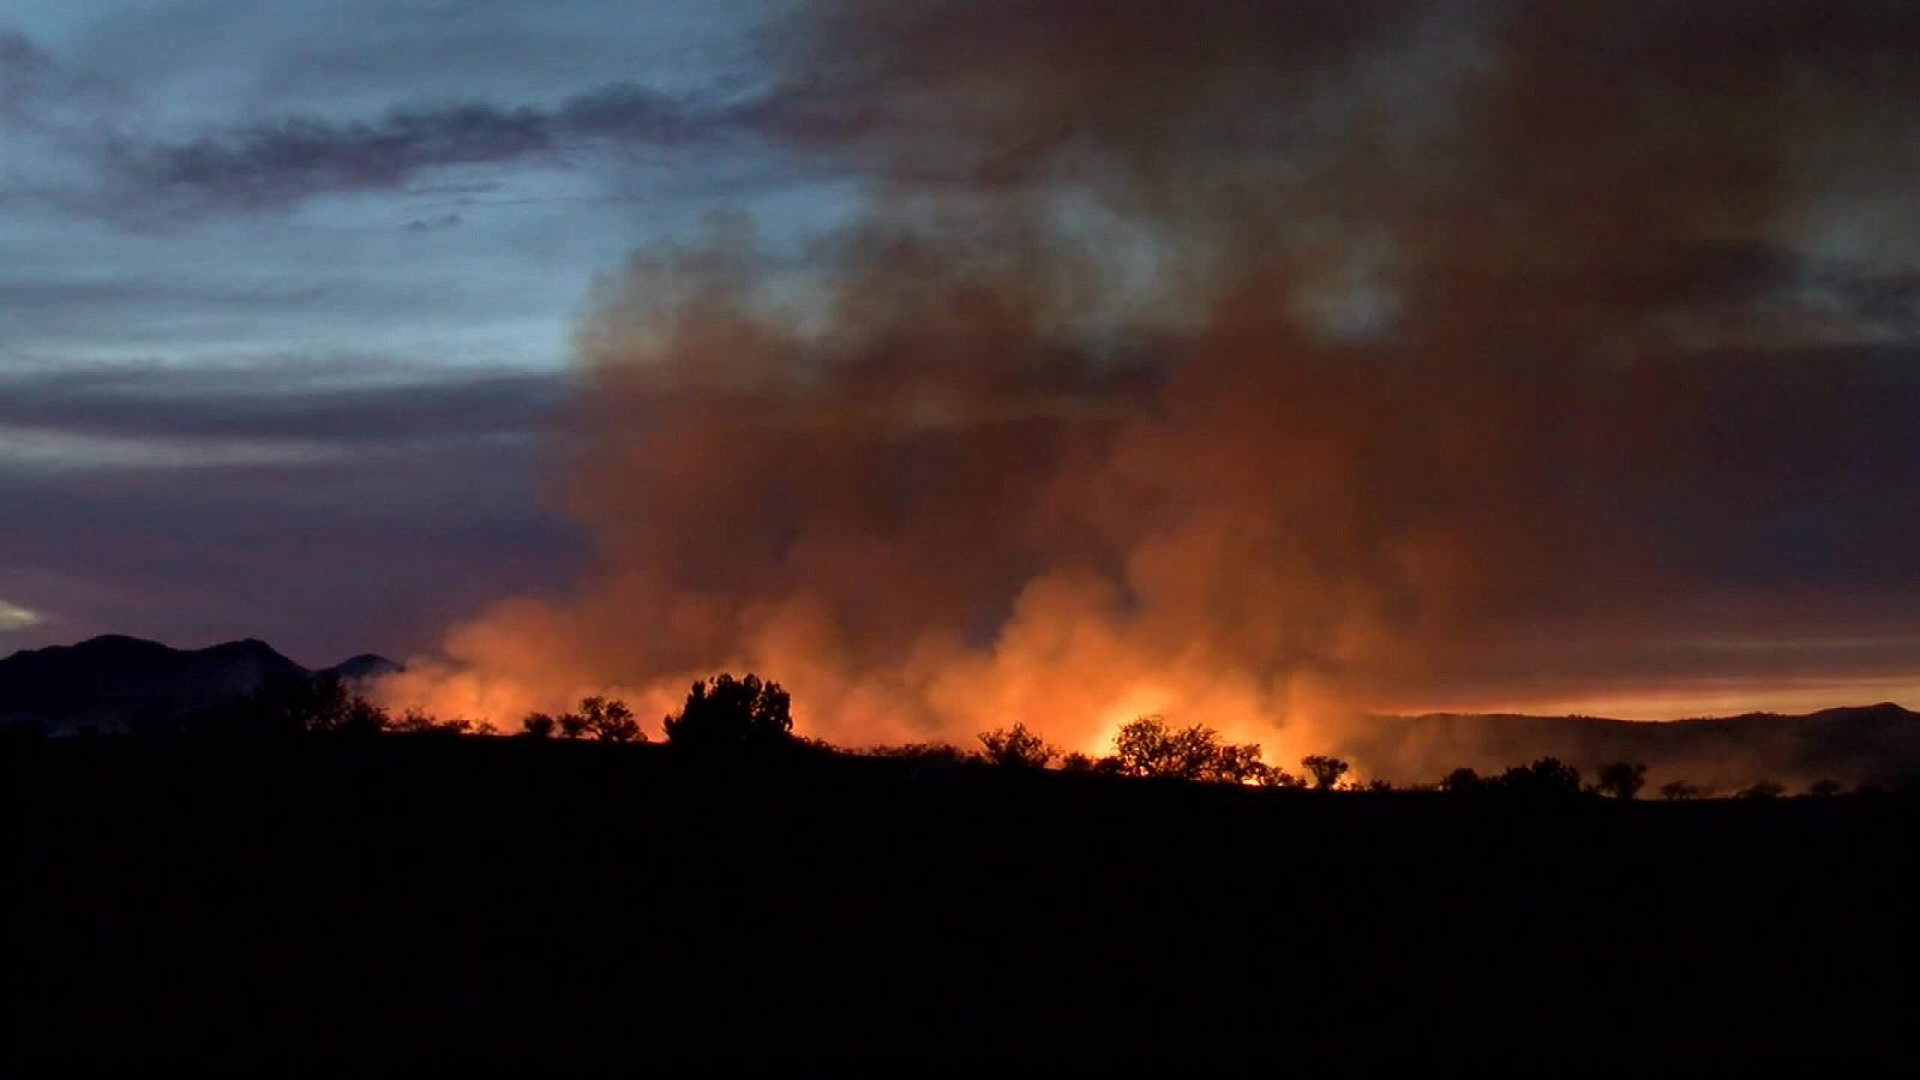 The Sawmill Fire burned 47,000 acres after spreading to the Coronado National Forest in Arizona in April 2017. (Credit: KGUN)